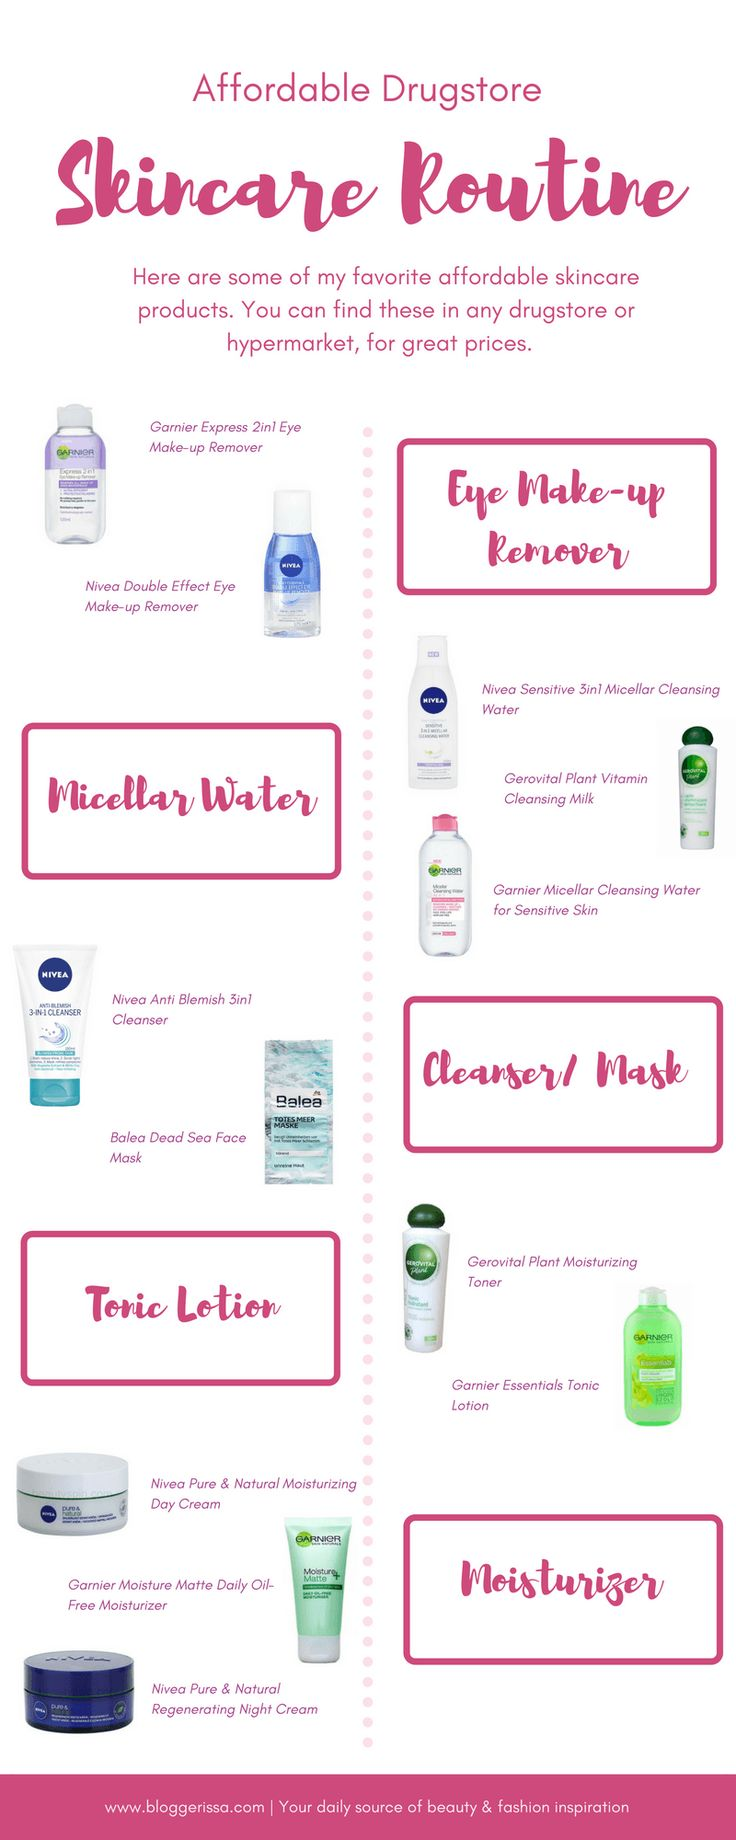 Affordable Drugstore #Skincare Routine Infographic